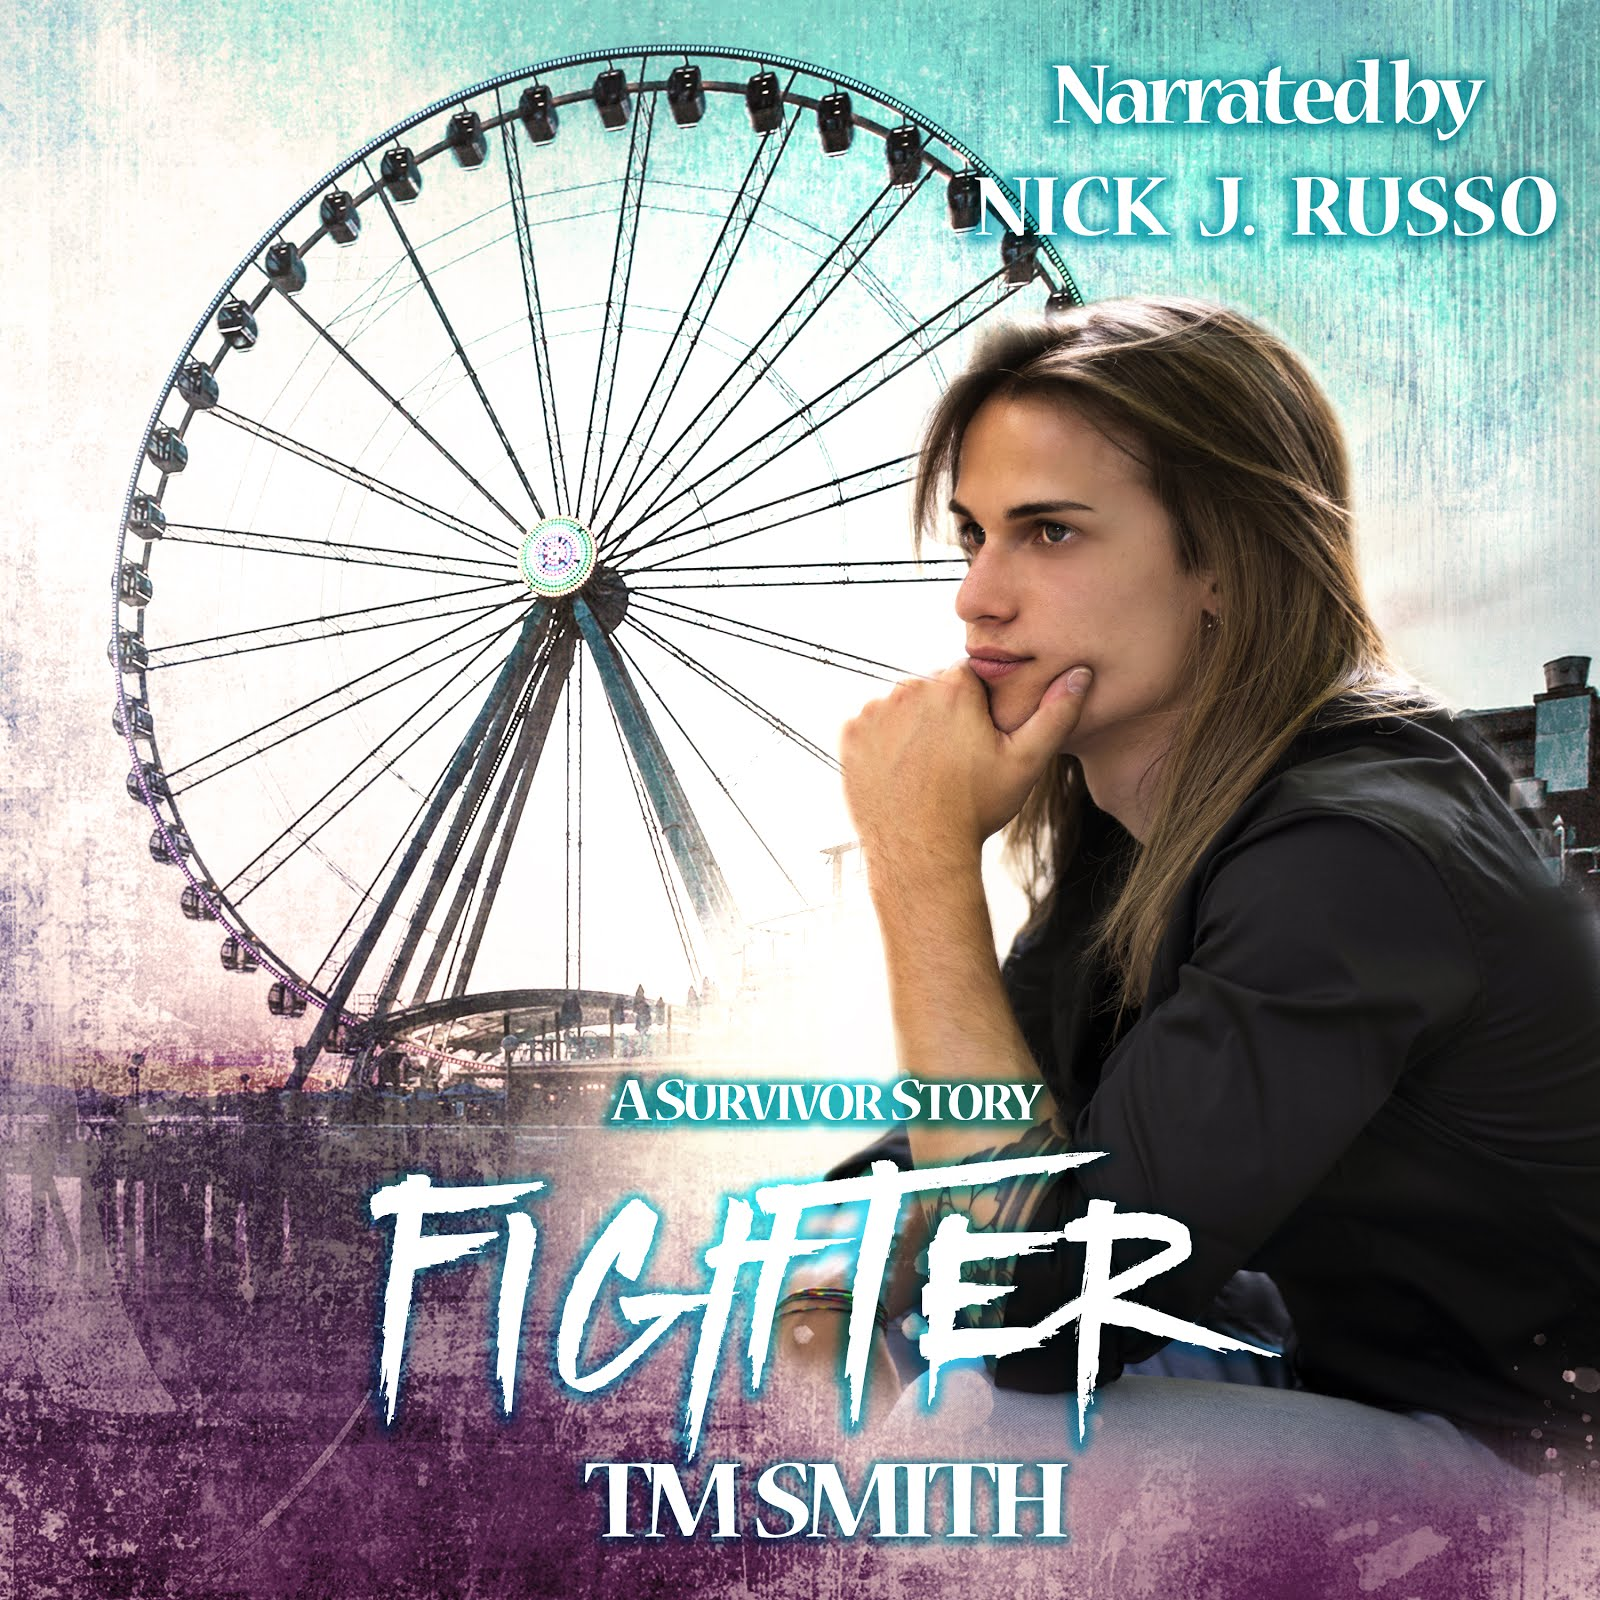 Fighter available on Audiobook now!